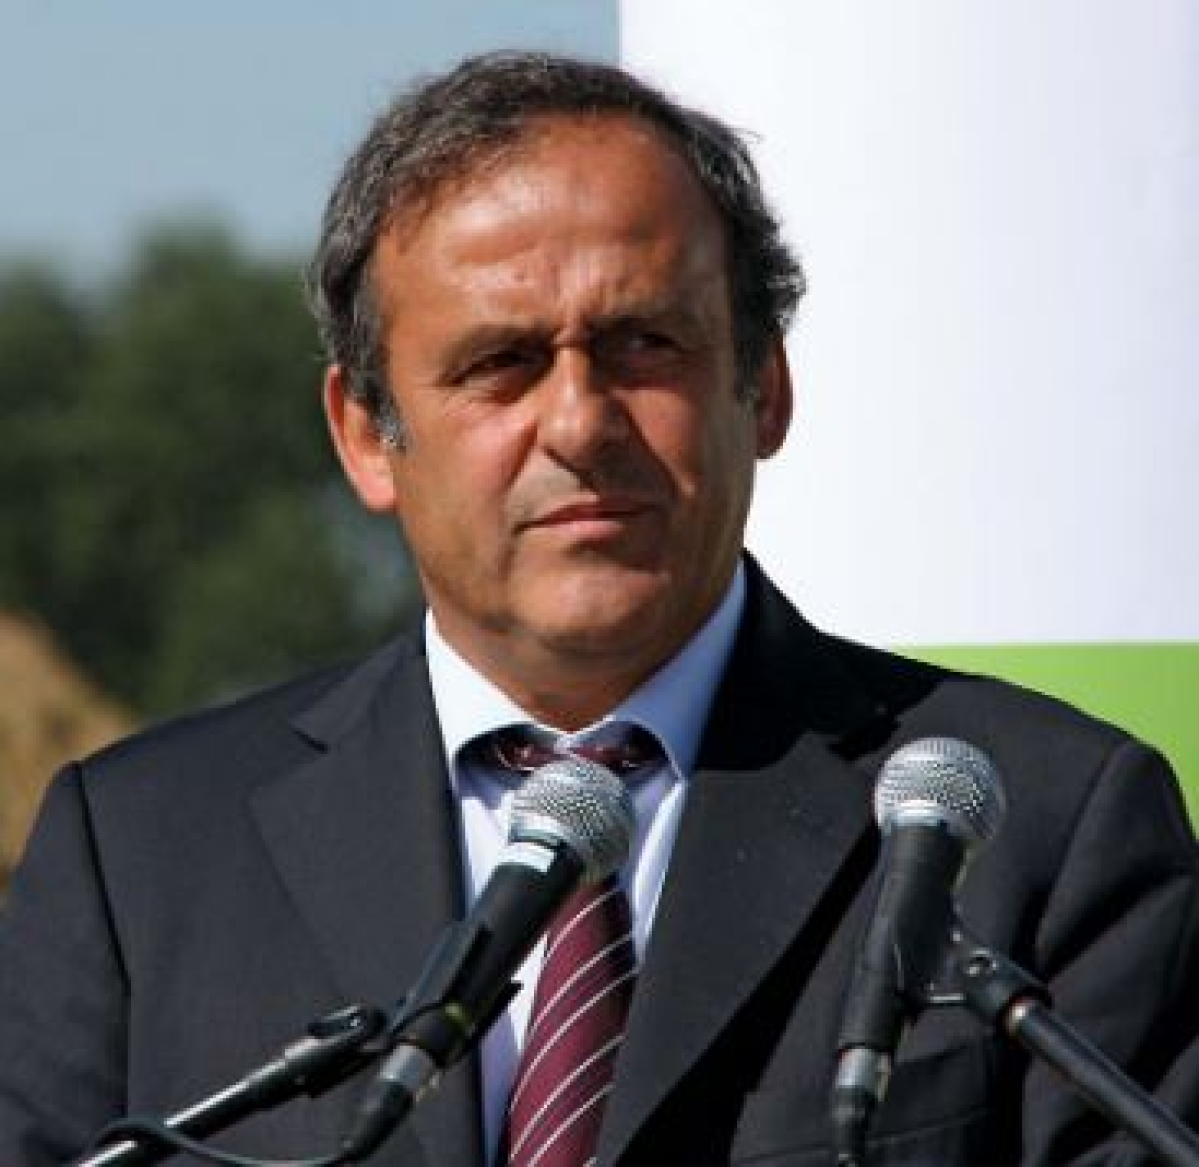 Platini quizzed in Swiss investigation